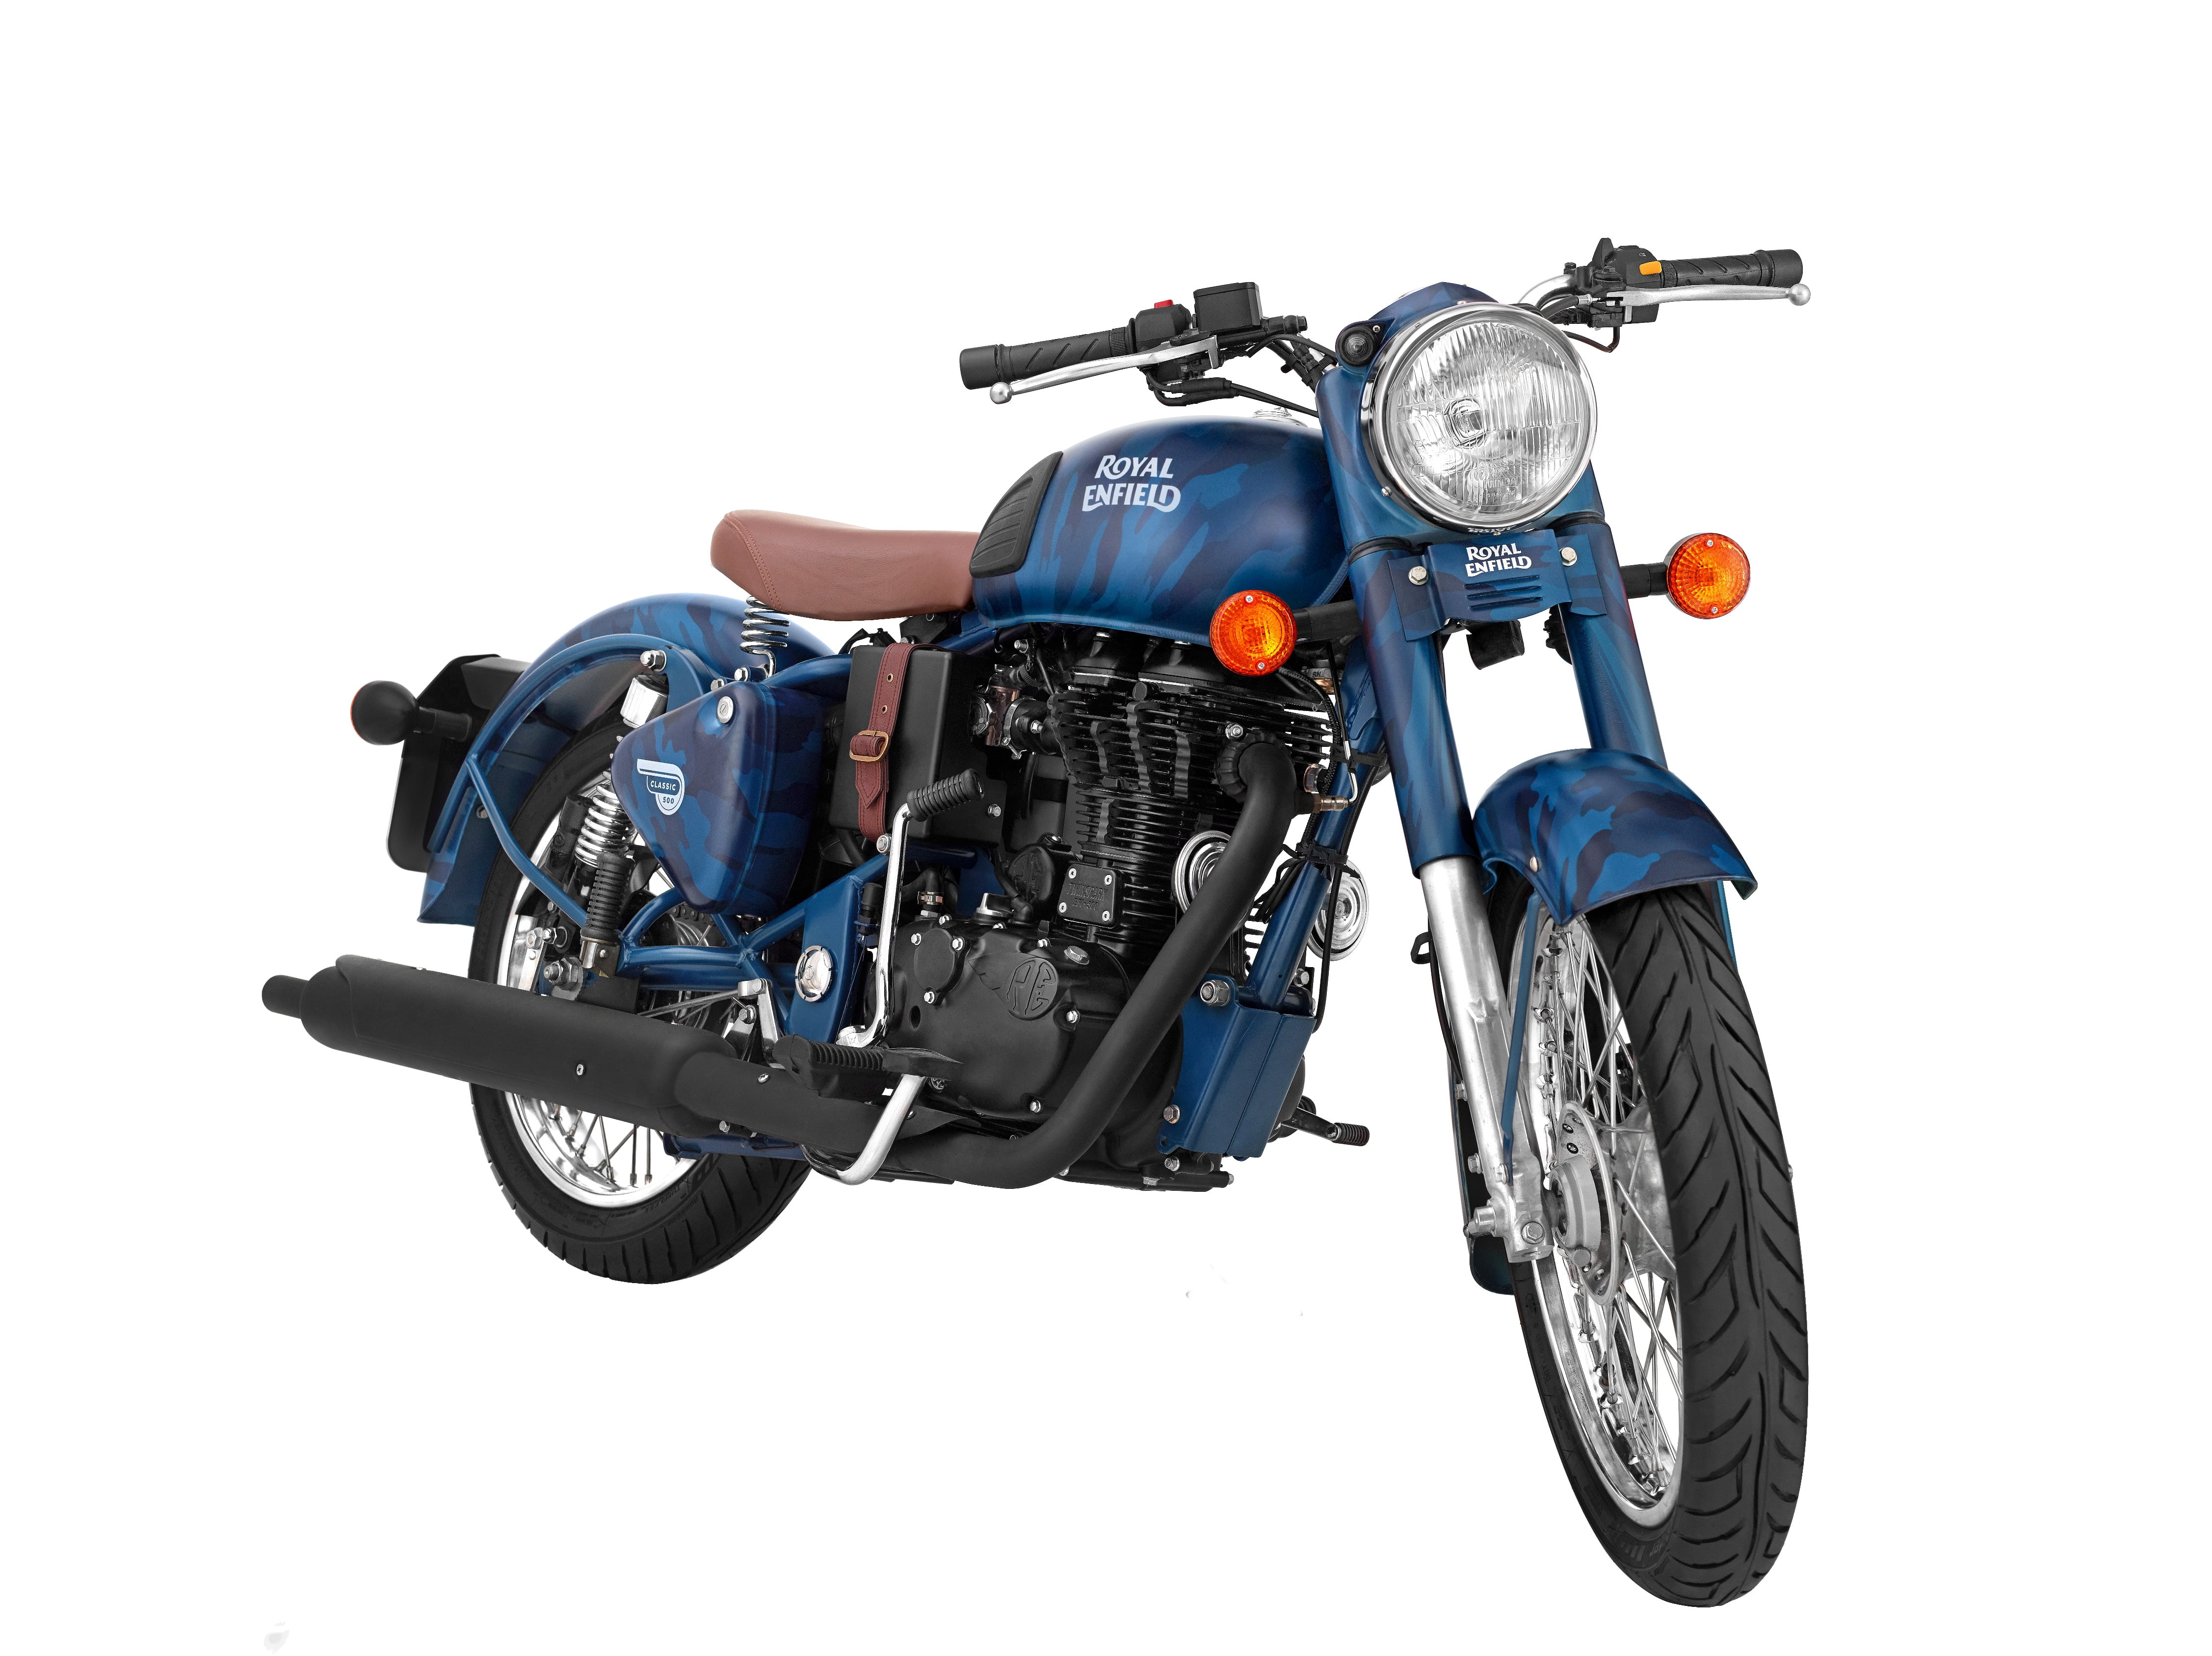 Hd Bullet Bike Wallpaper Royal Enfield Despatch Limited Edition Price Pics Features